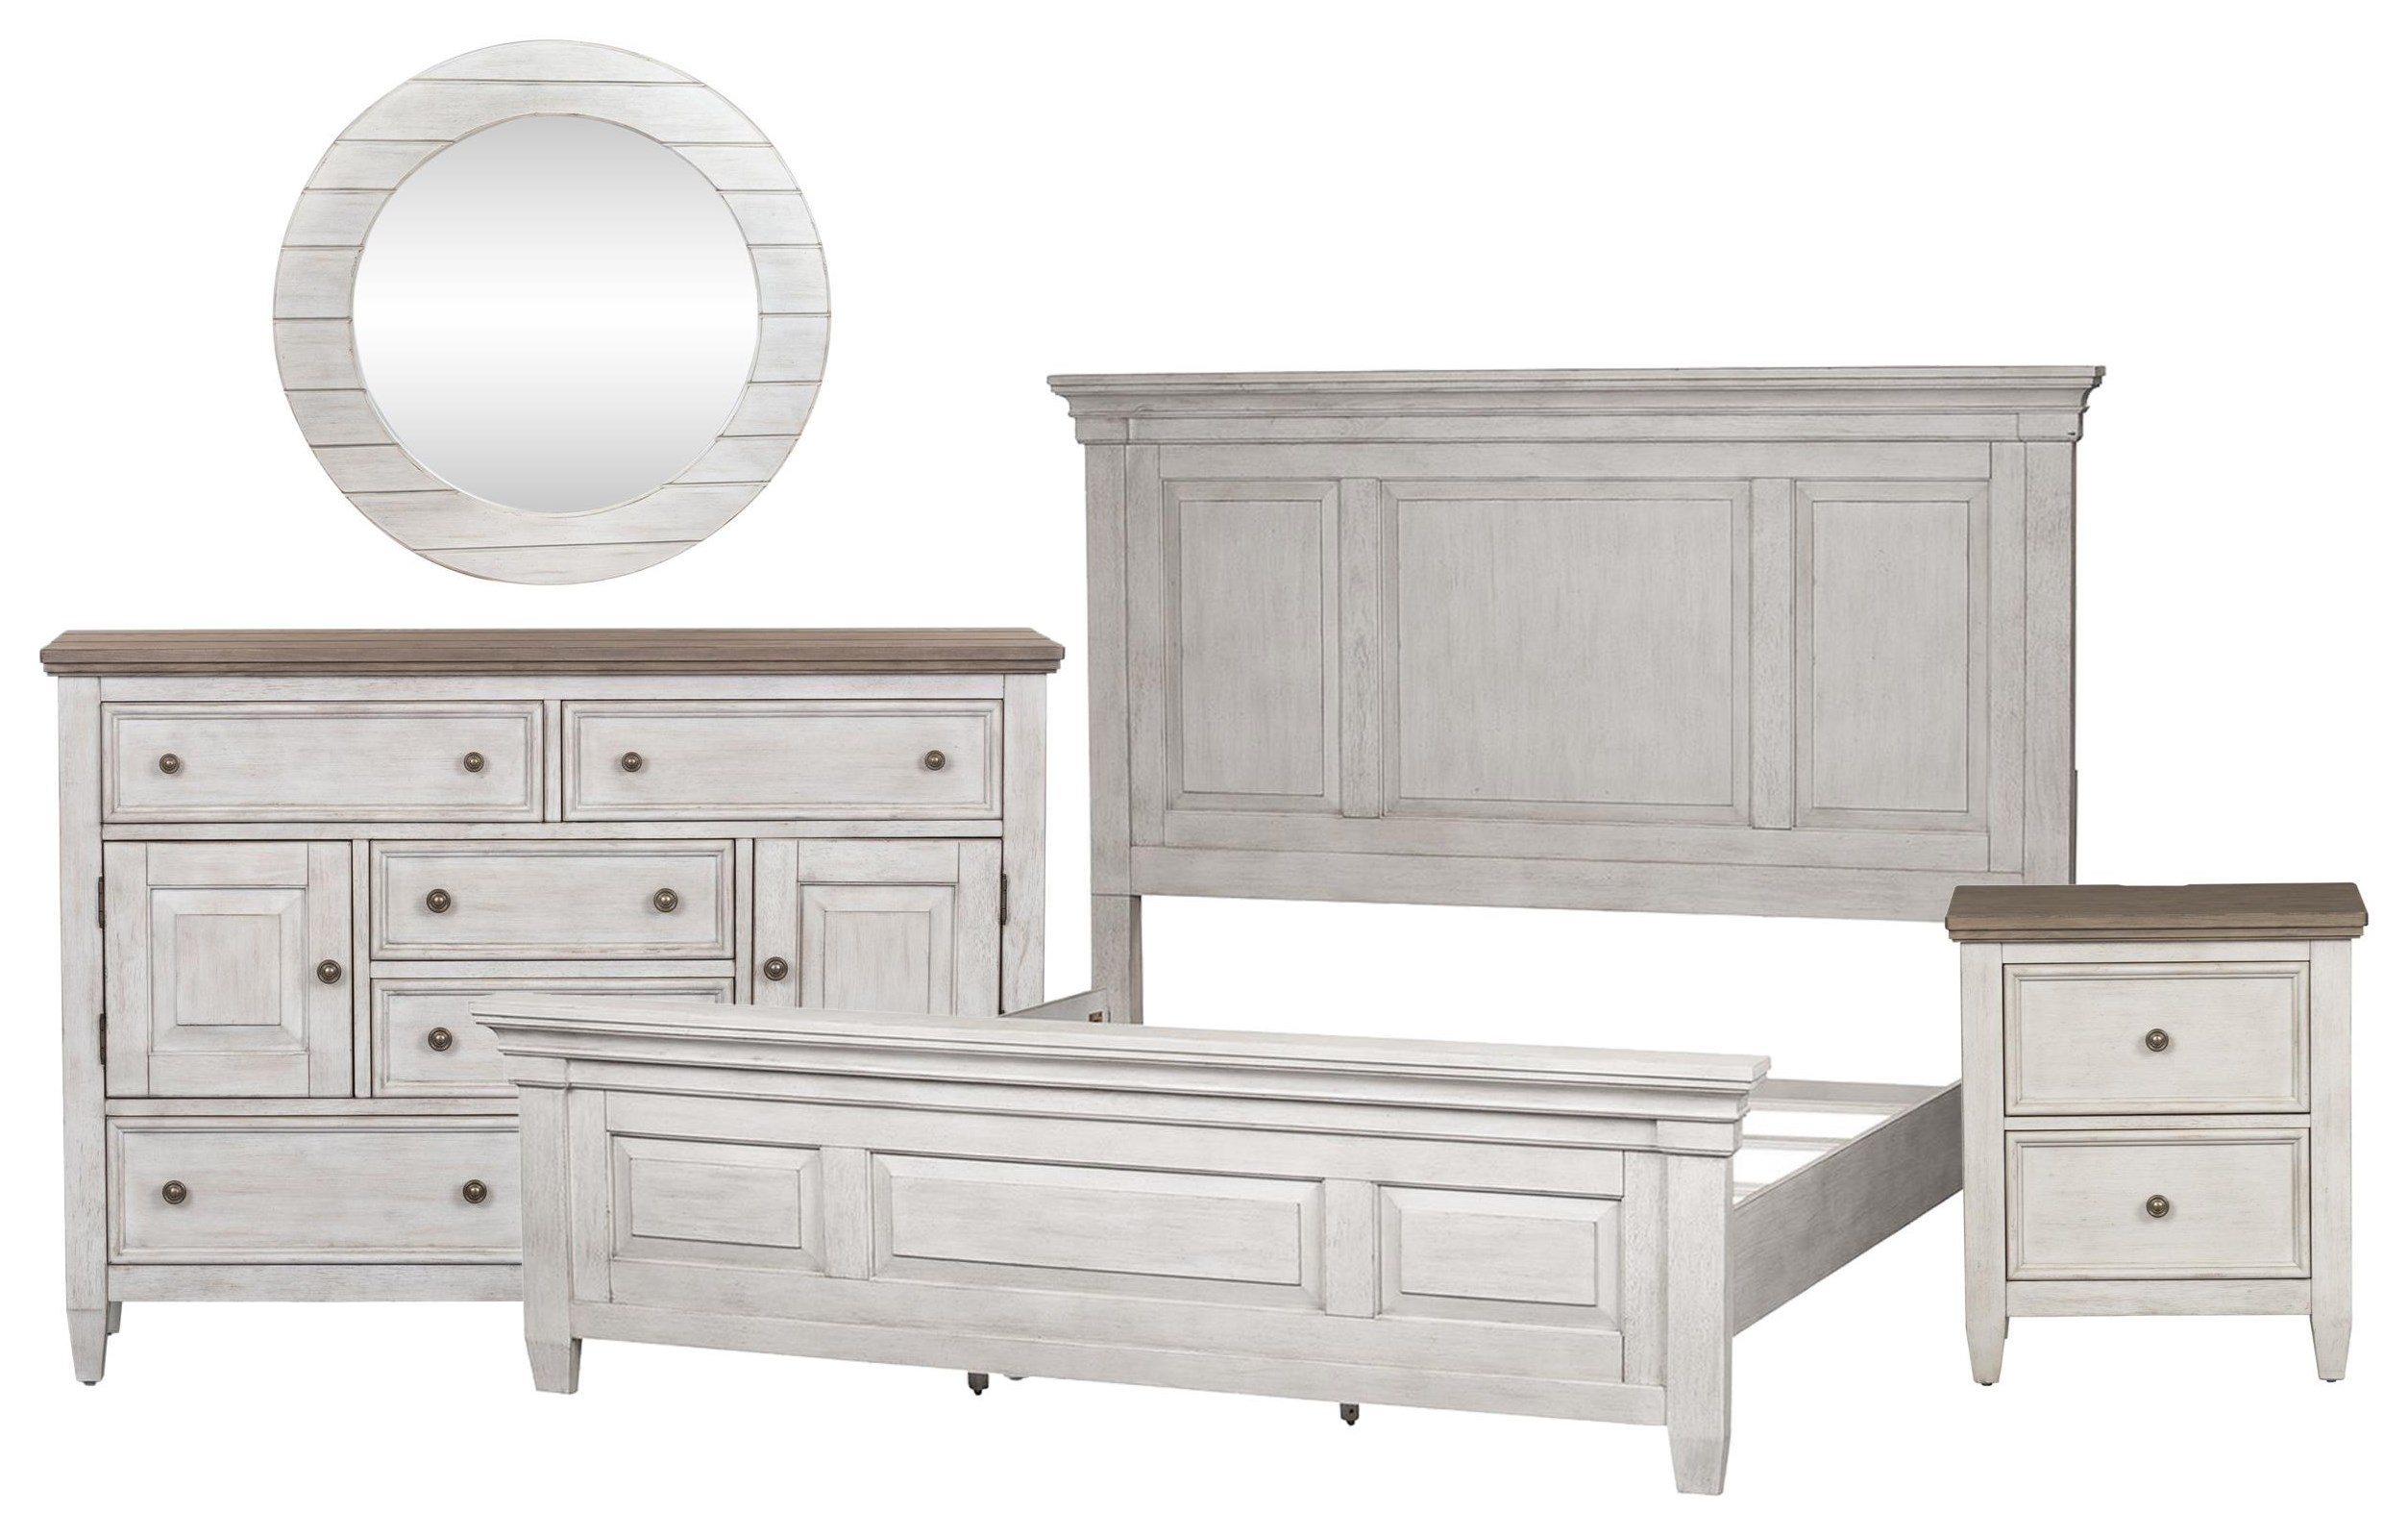 Heartland Queen Panel Bed, Chesser, Mirror, Nightstand by Liberty Furniture at Johnny Janosik